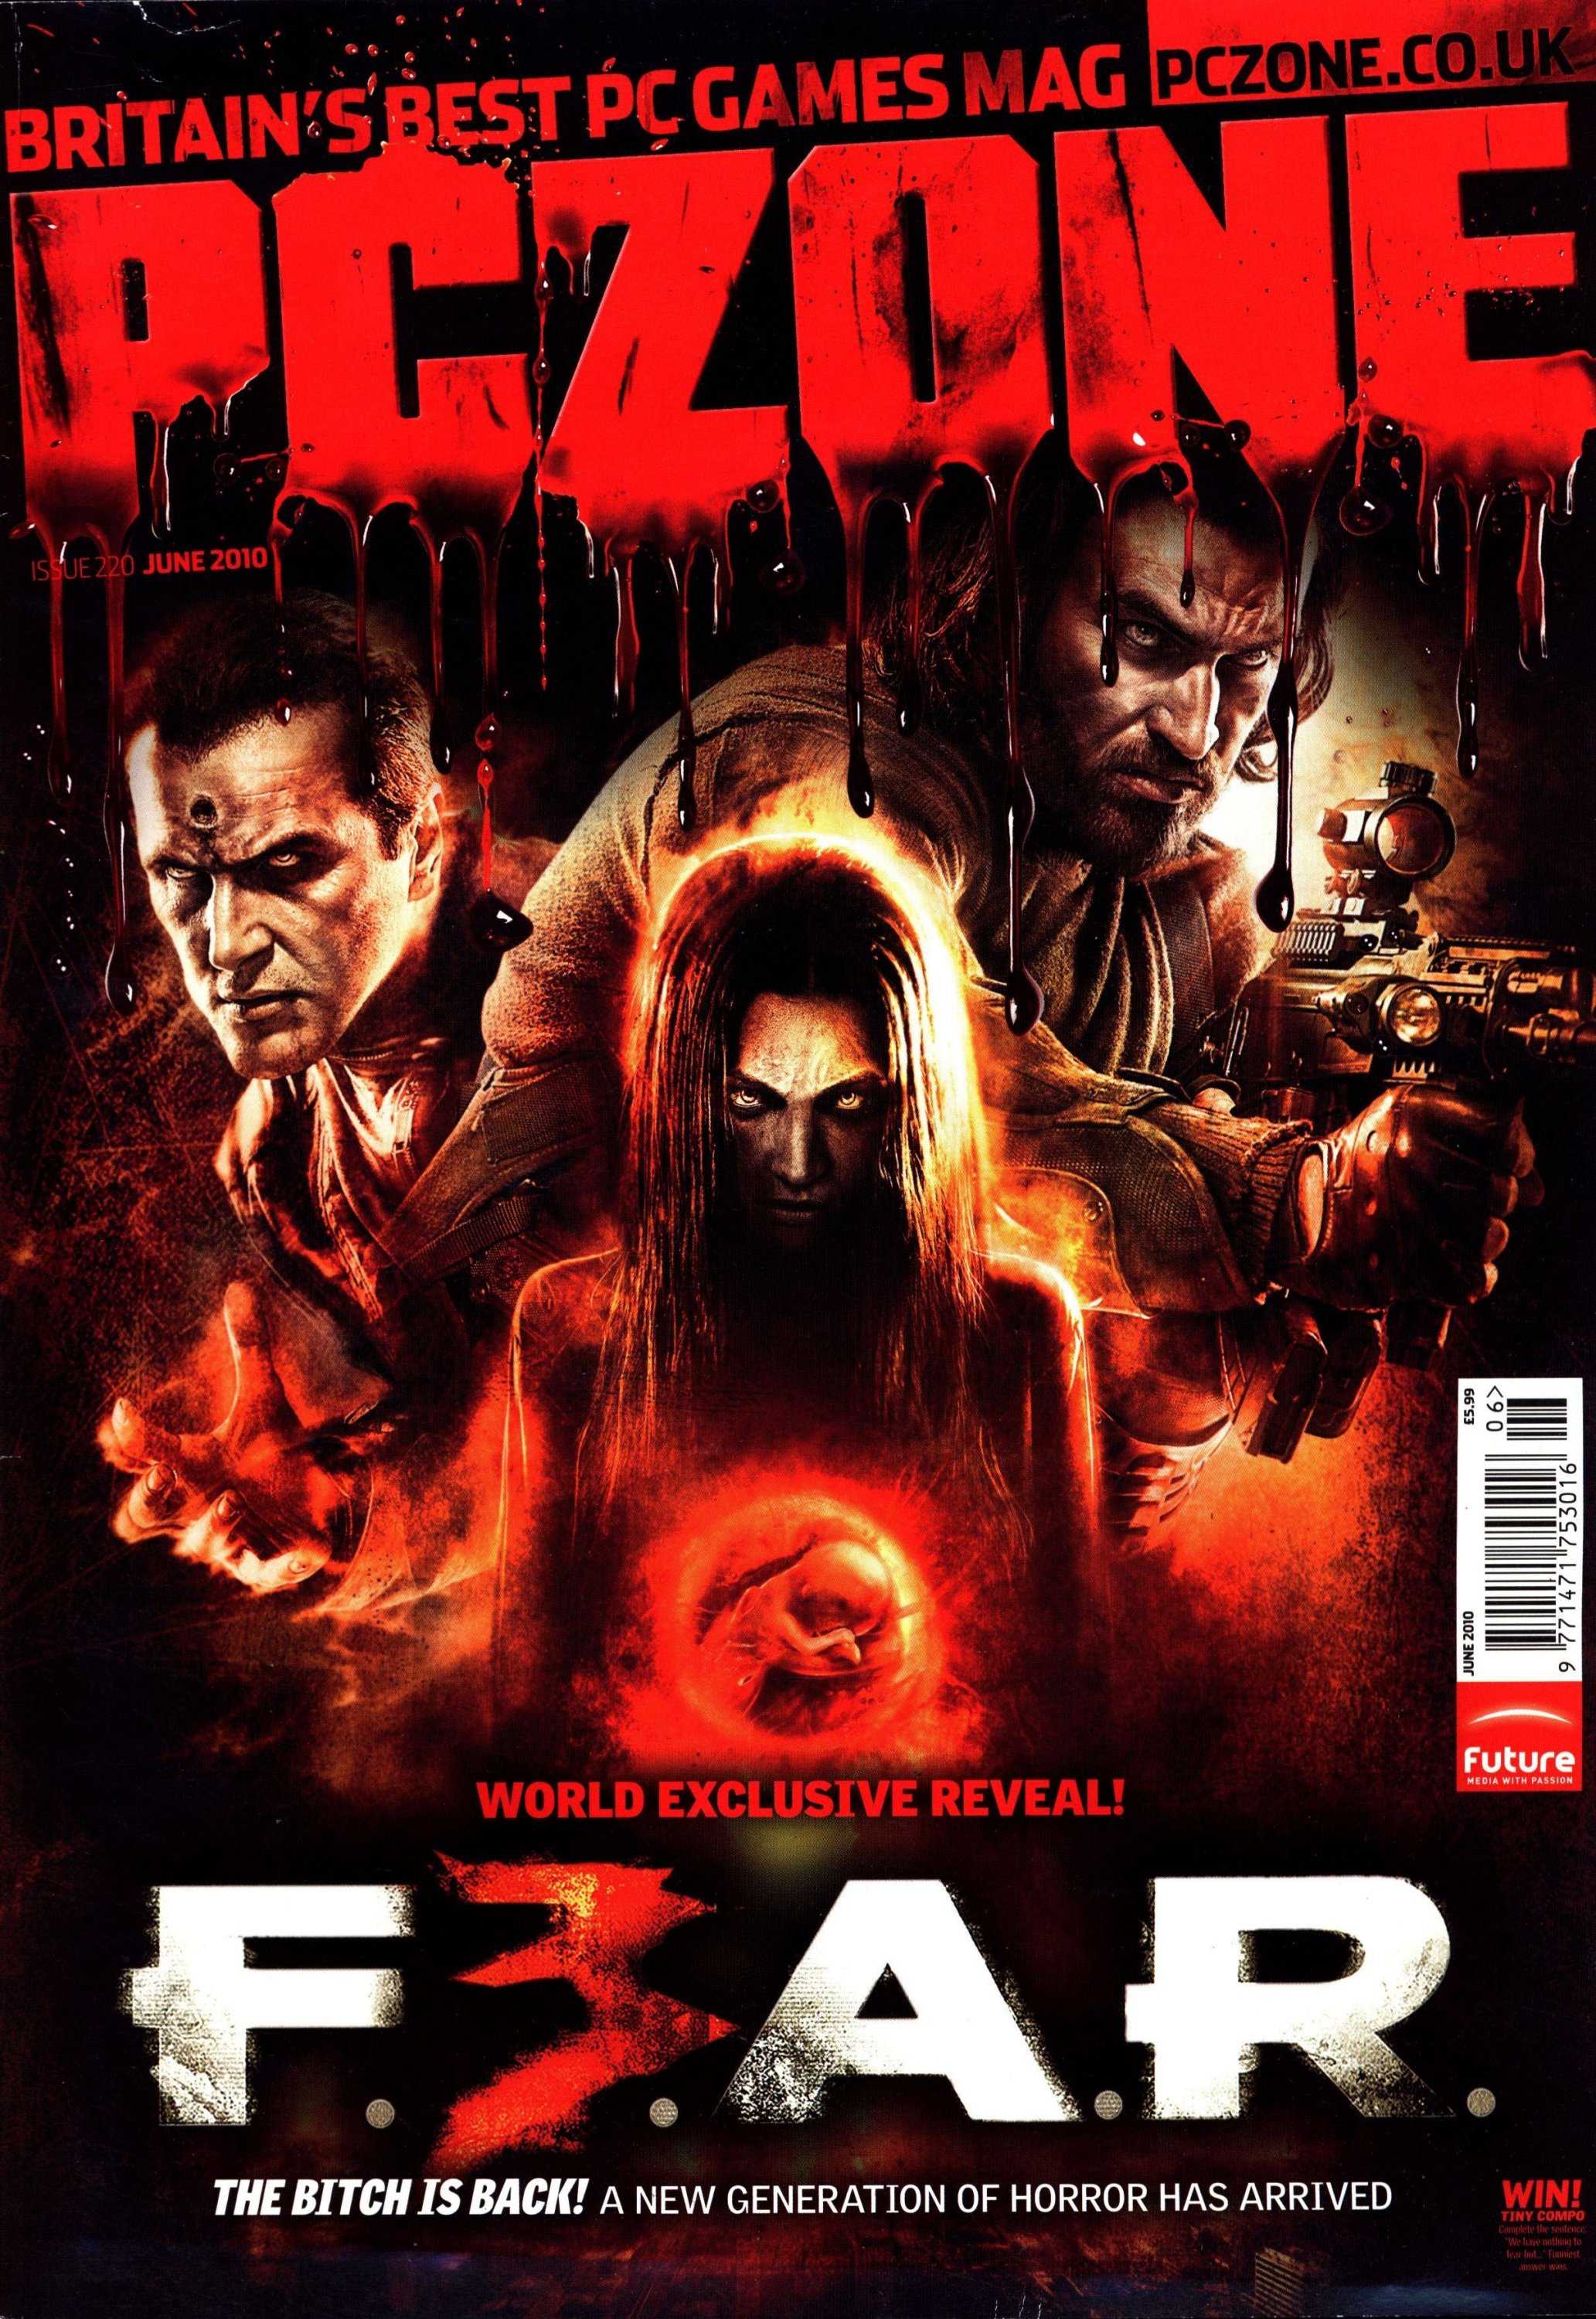 PC Zone Issue 220 (June 2010)